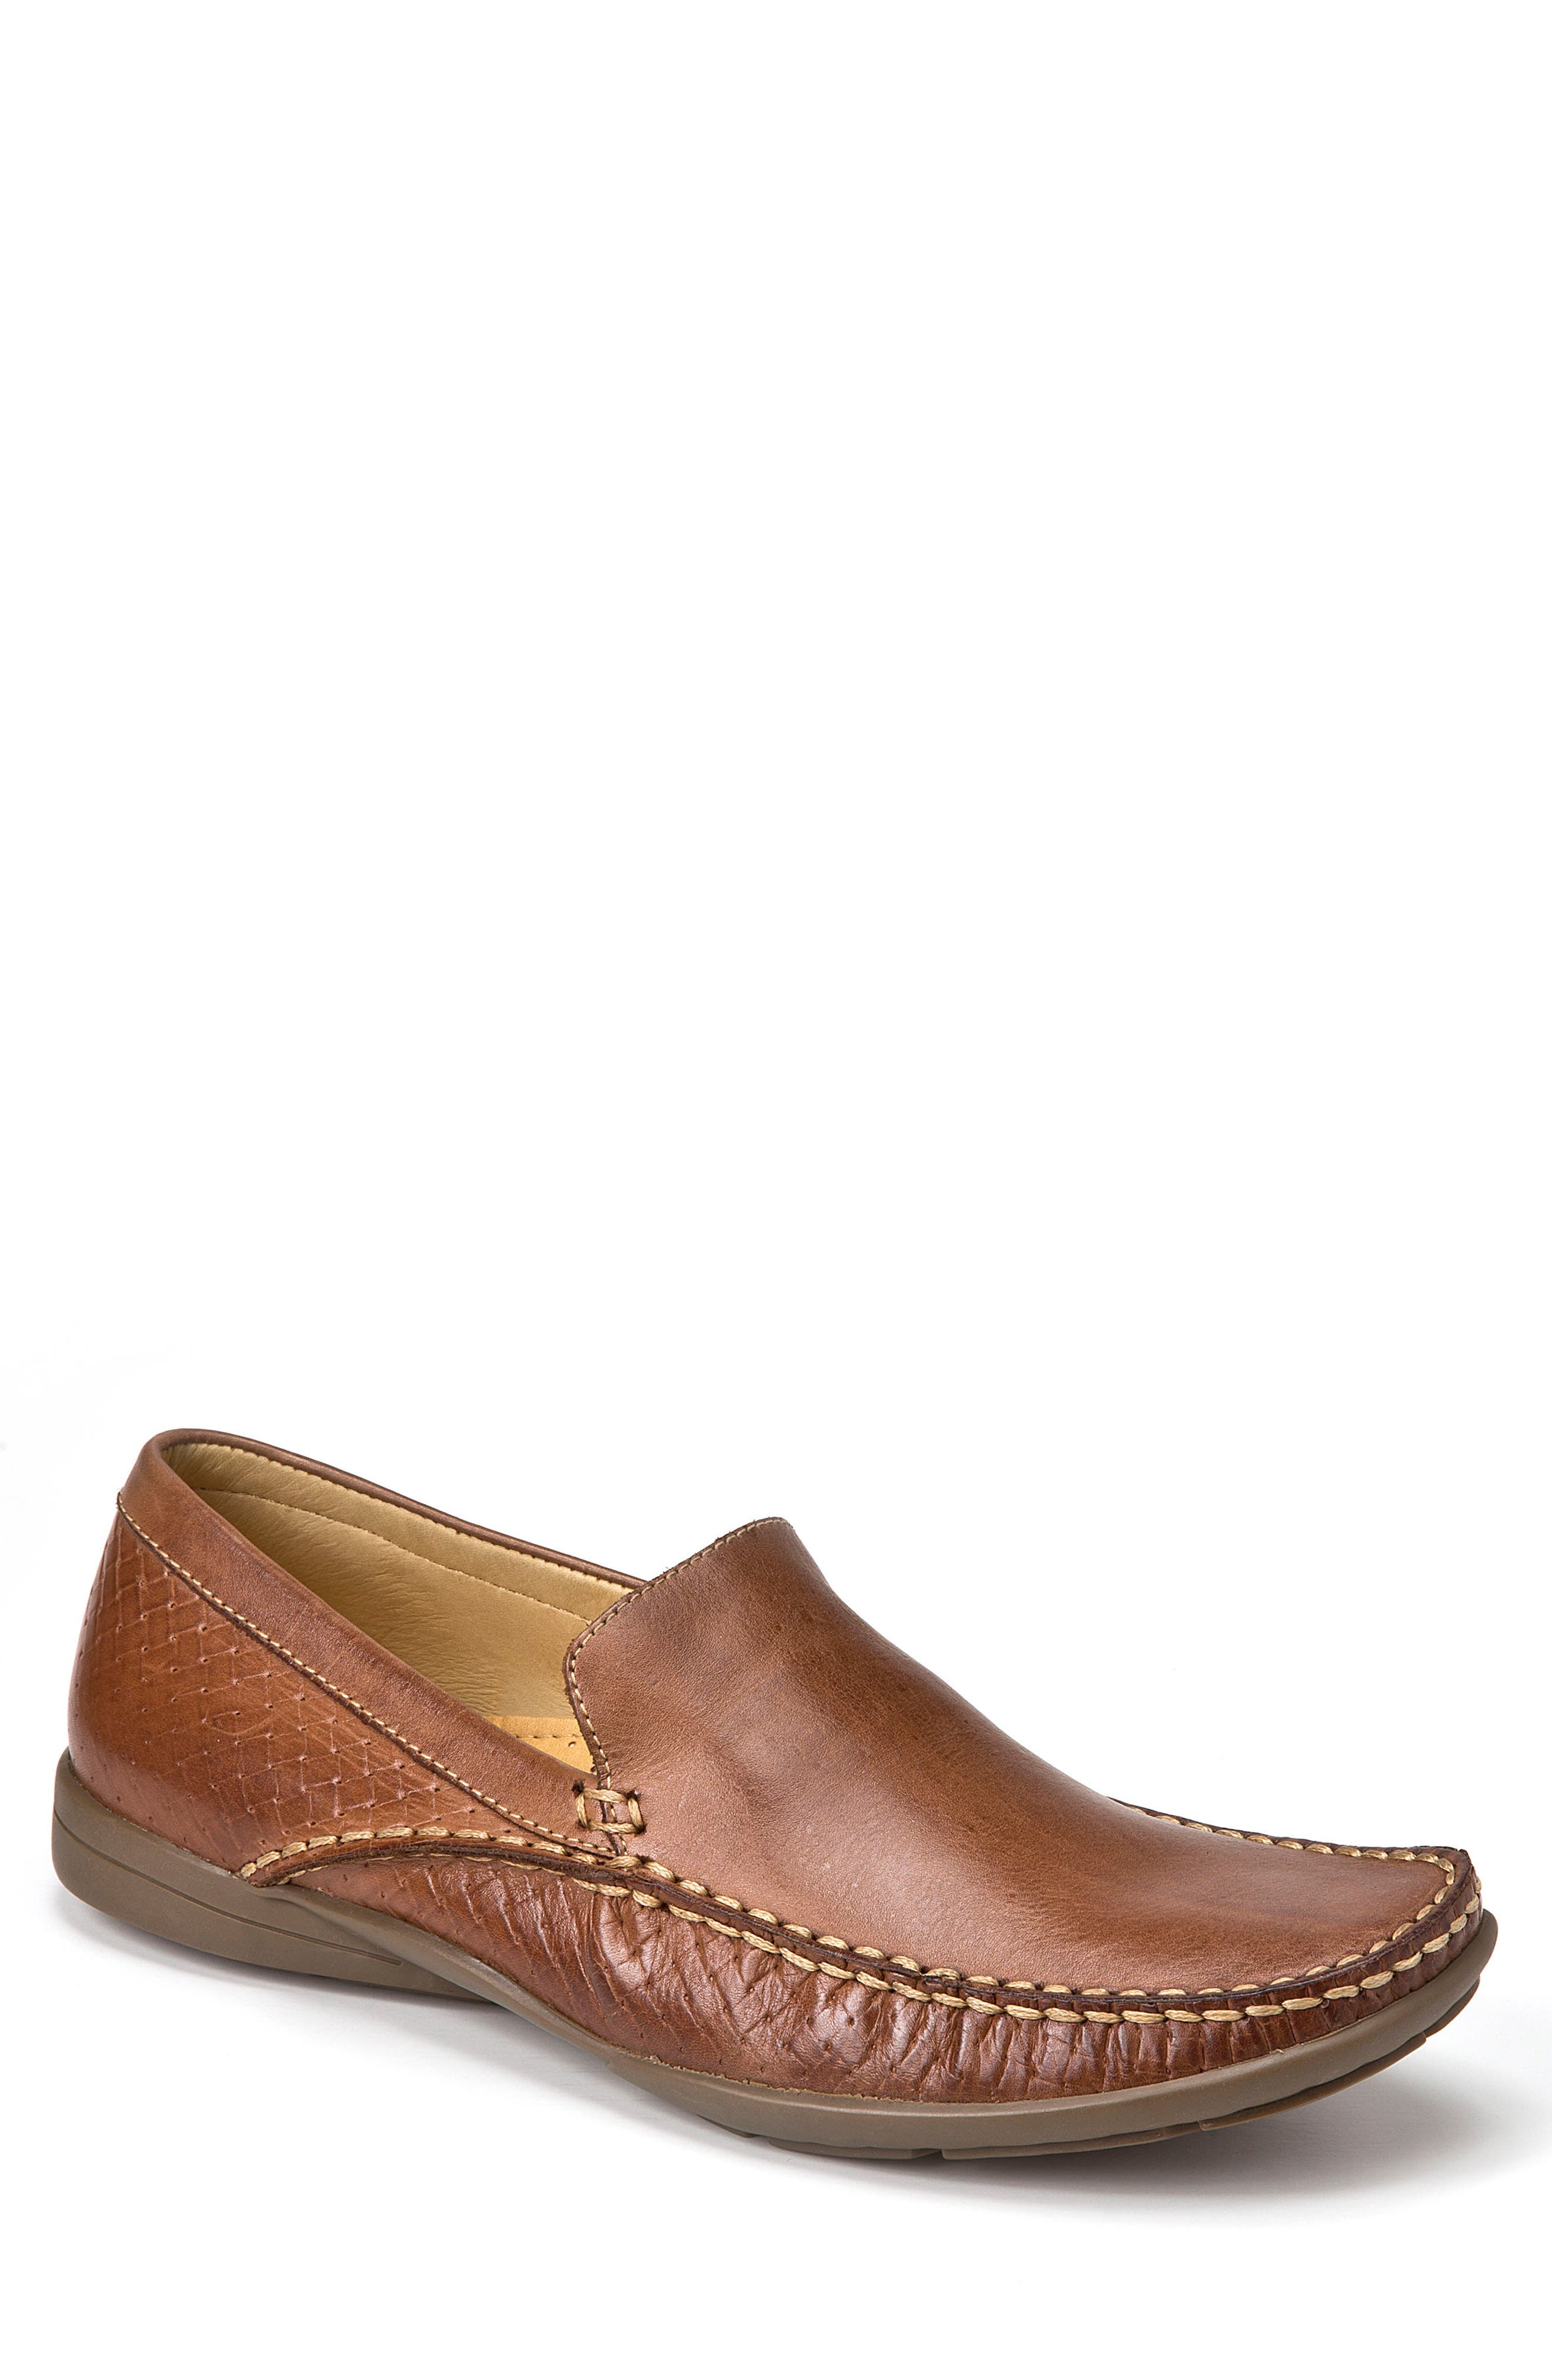 Dudley Moc Toe Loafer,                             Main thumbnail 1, color,                             230